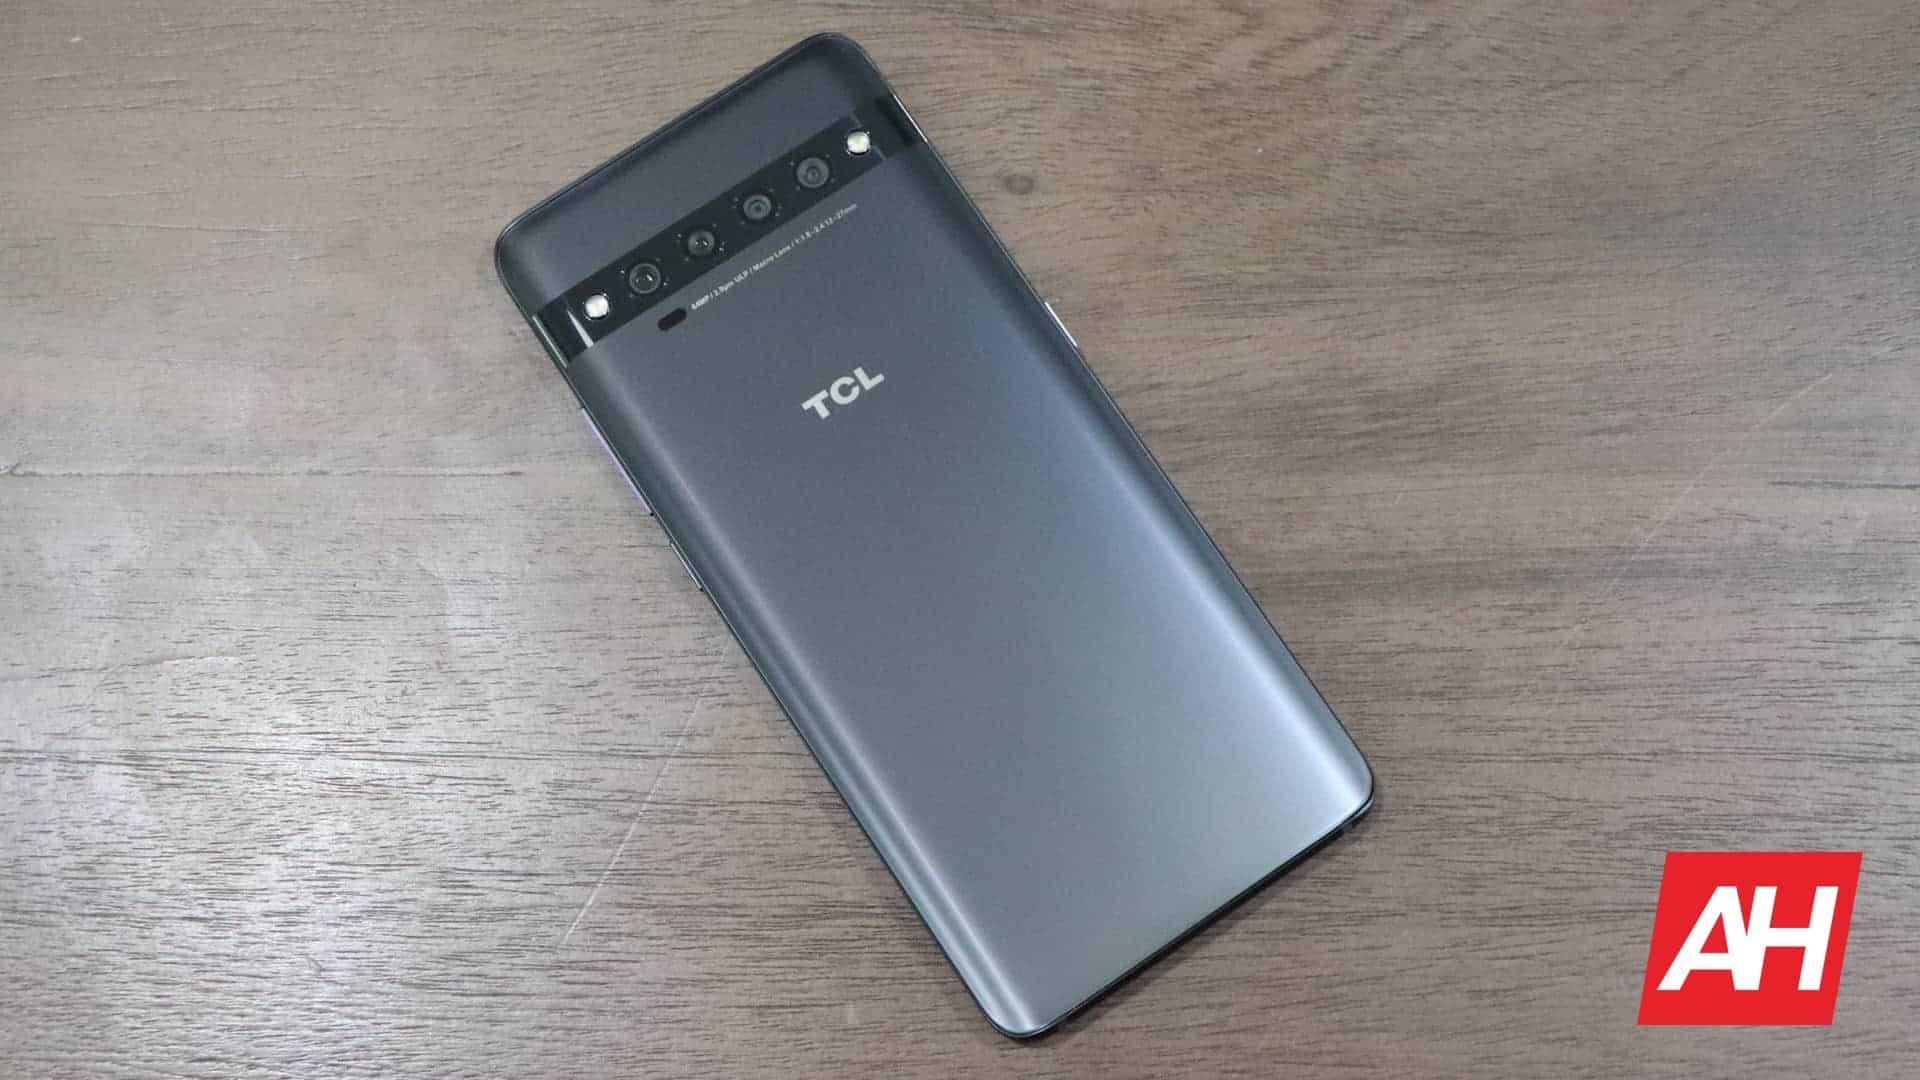 01 Hardware TCL 10 Pro Review AH 2020